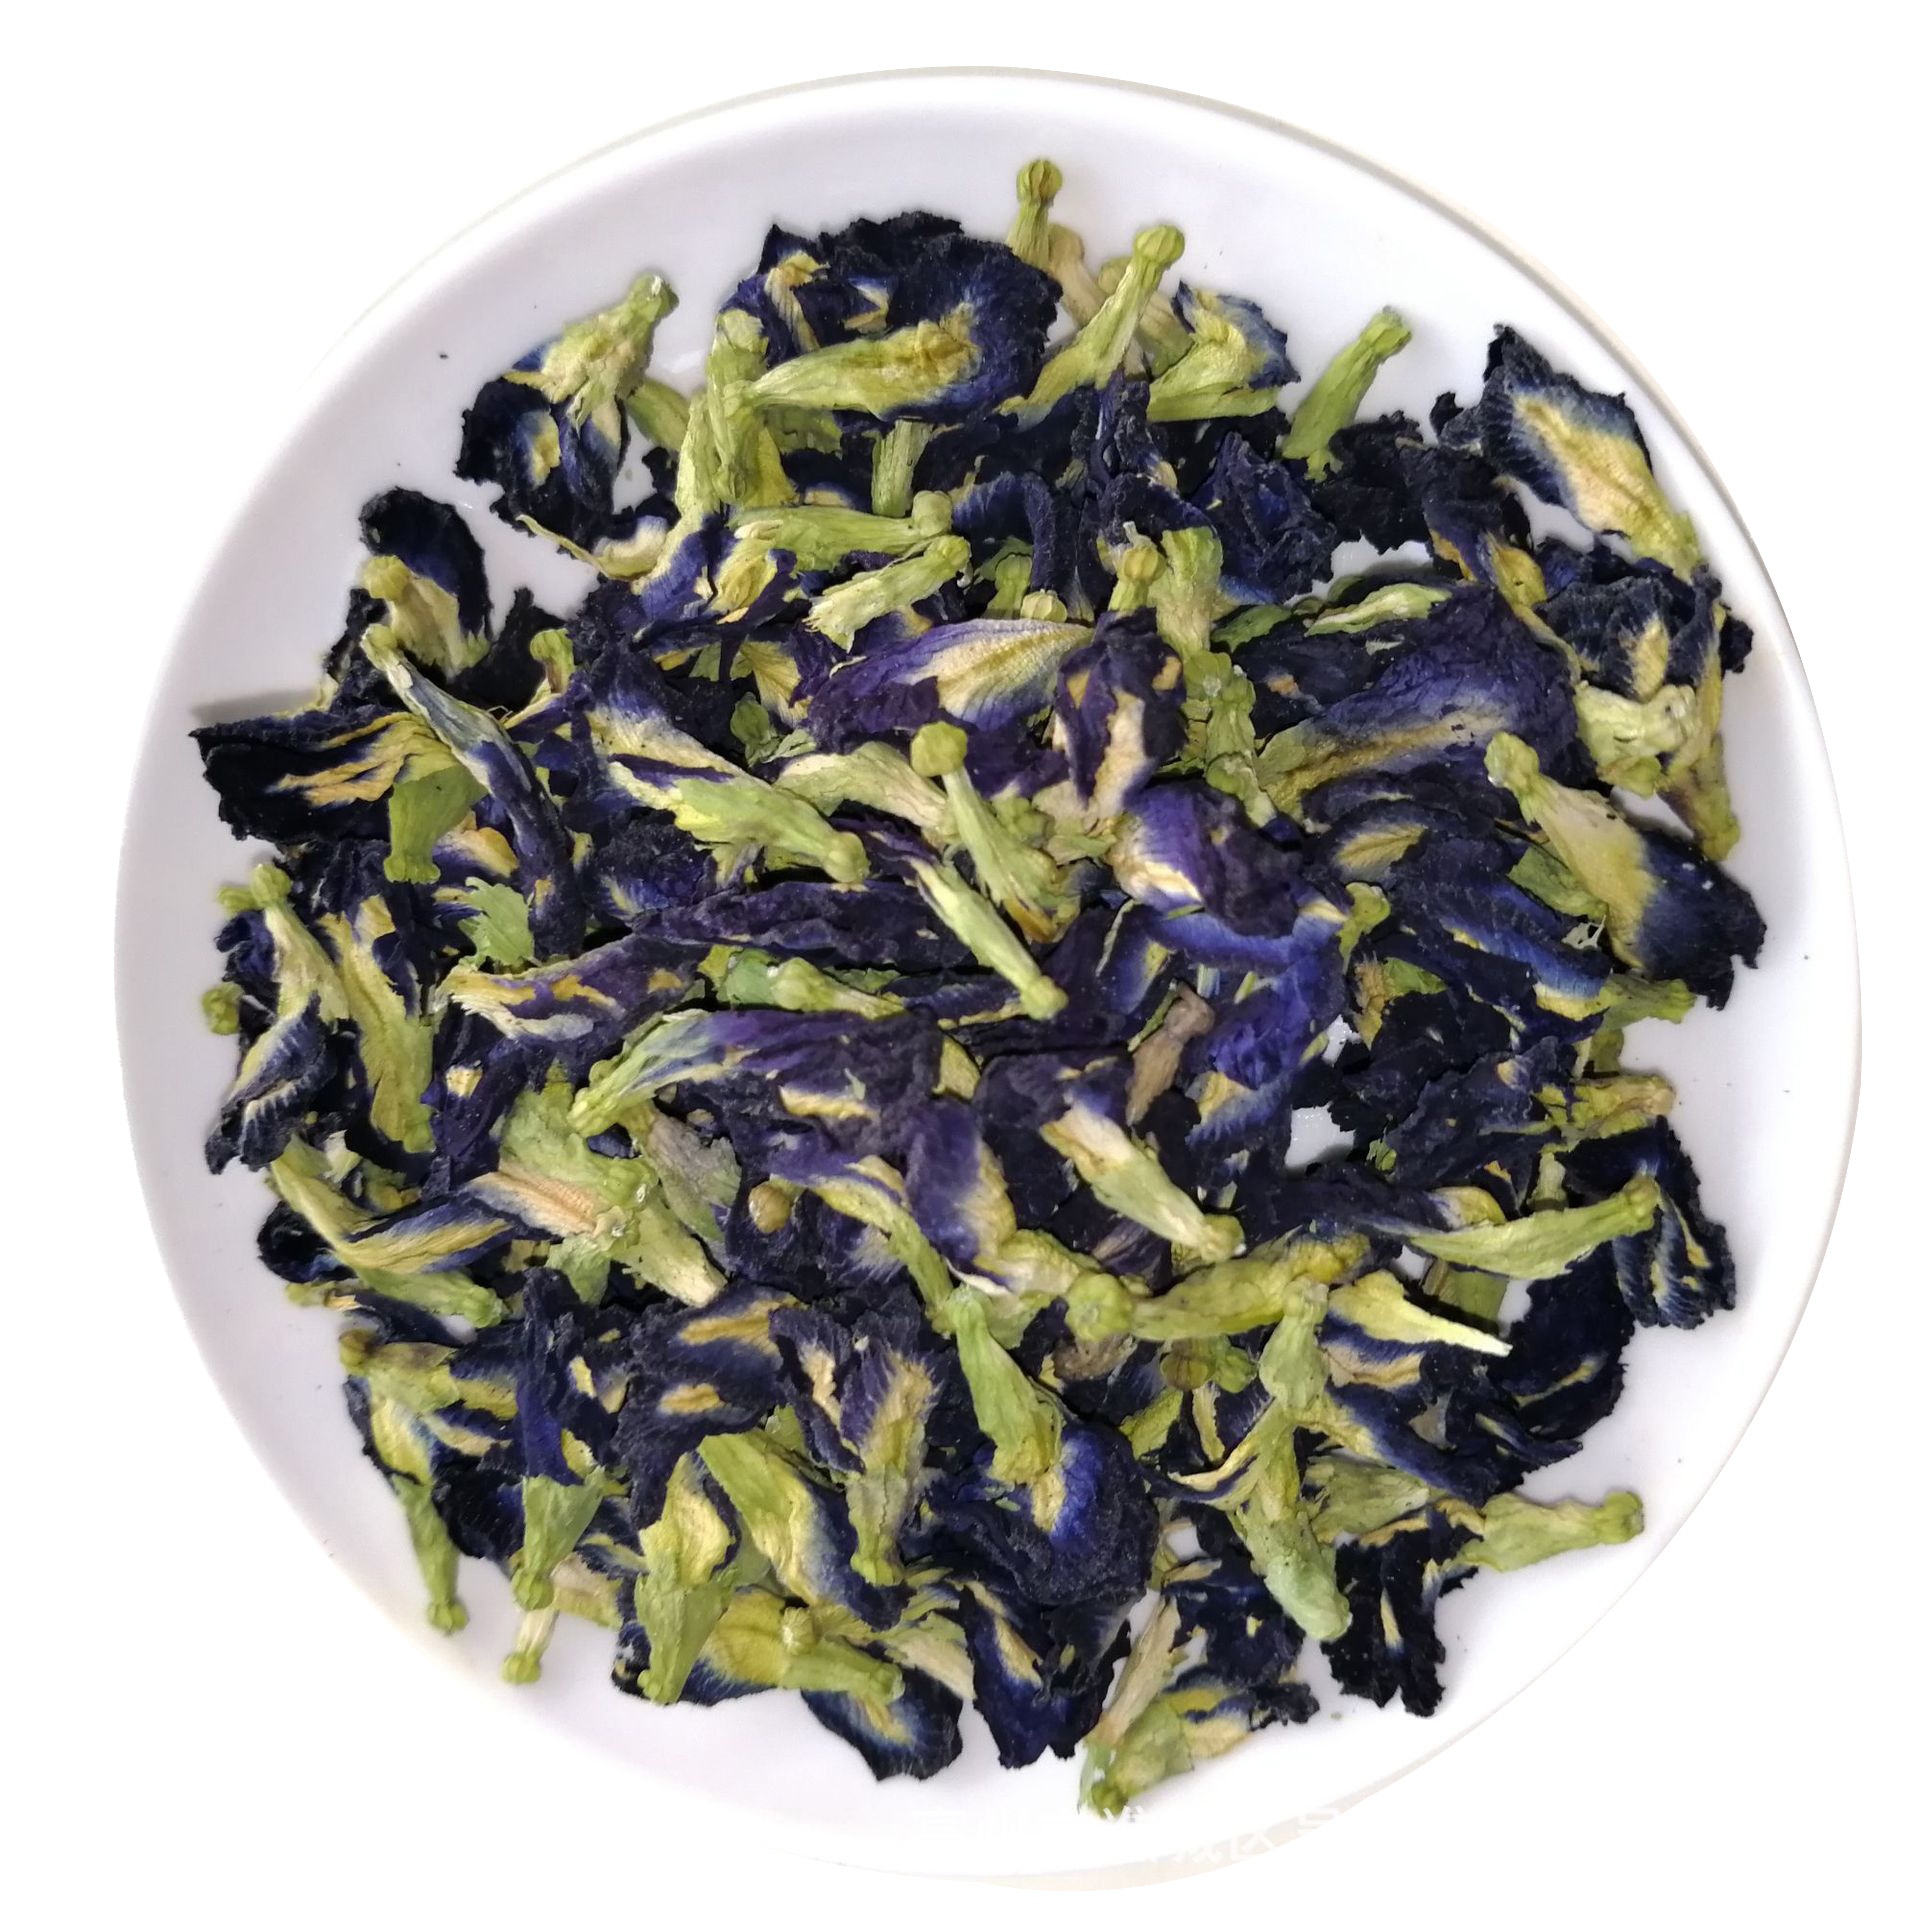 China Dried Flower Tea Bunga Telang Butterfly Pea Flower Wholesale - 4uTea | 4uTea.com